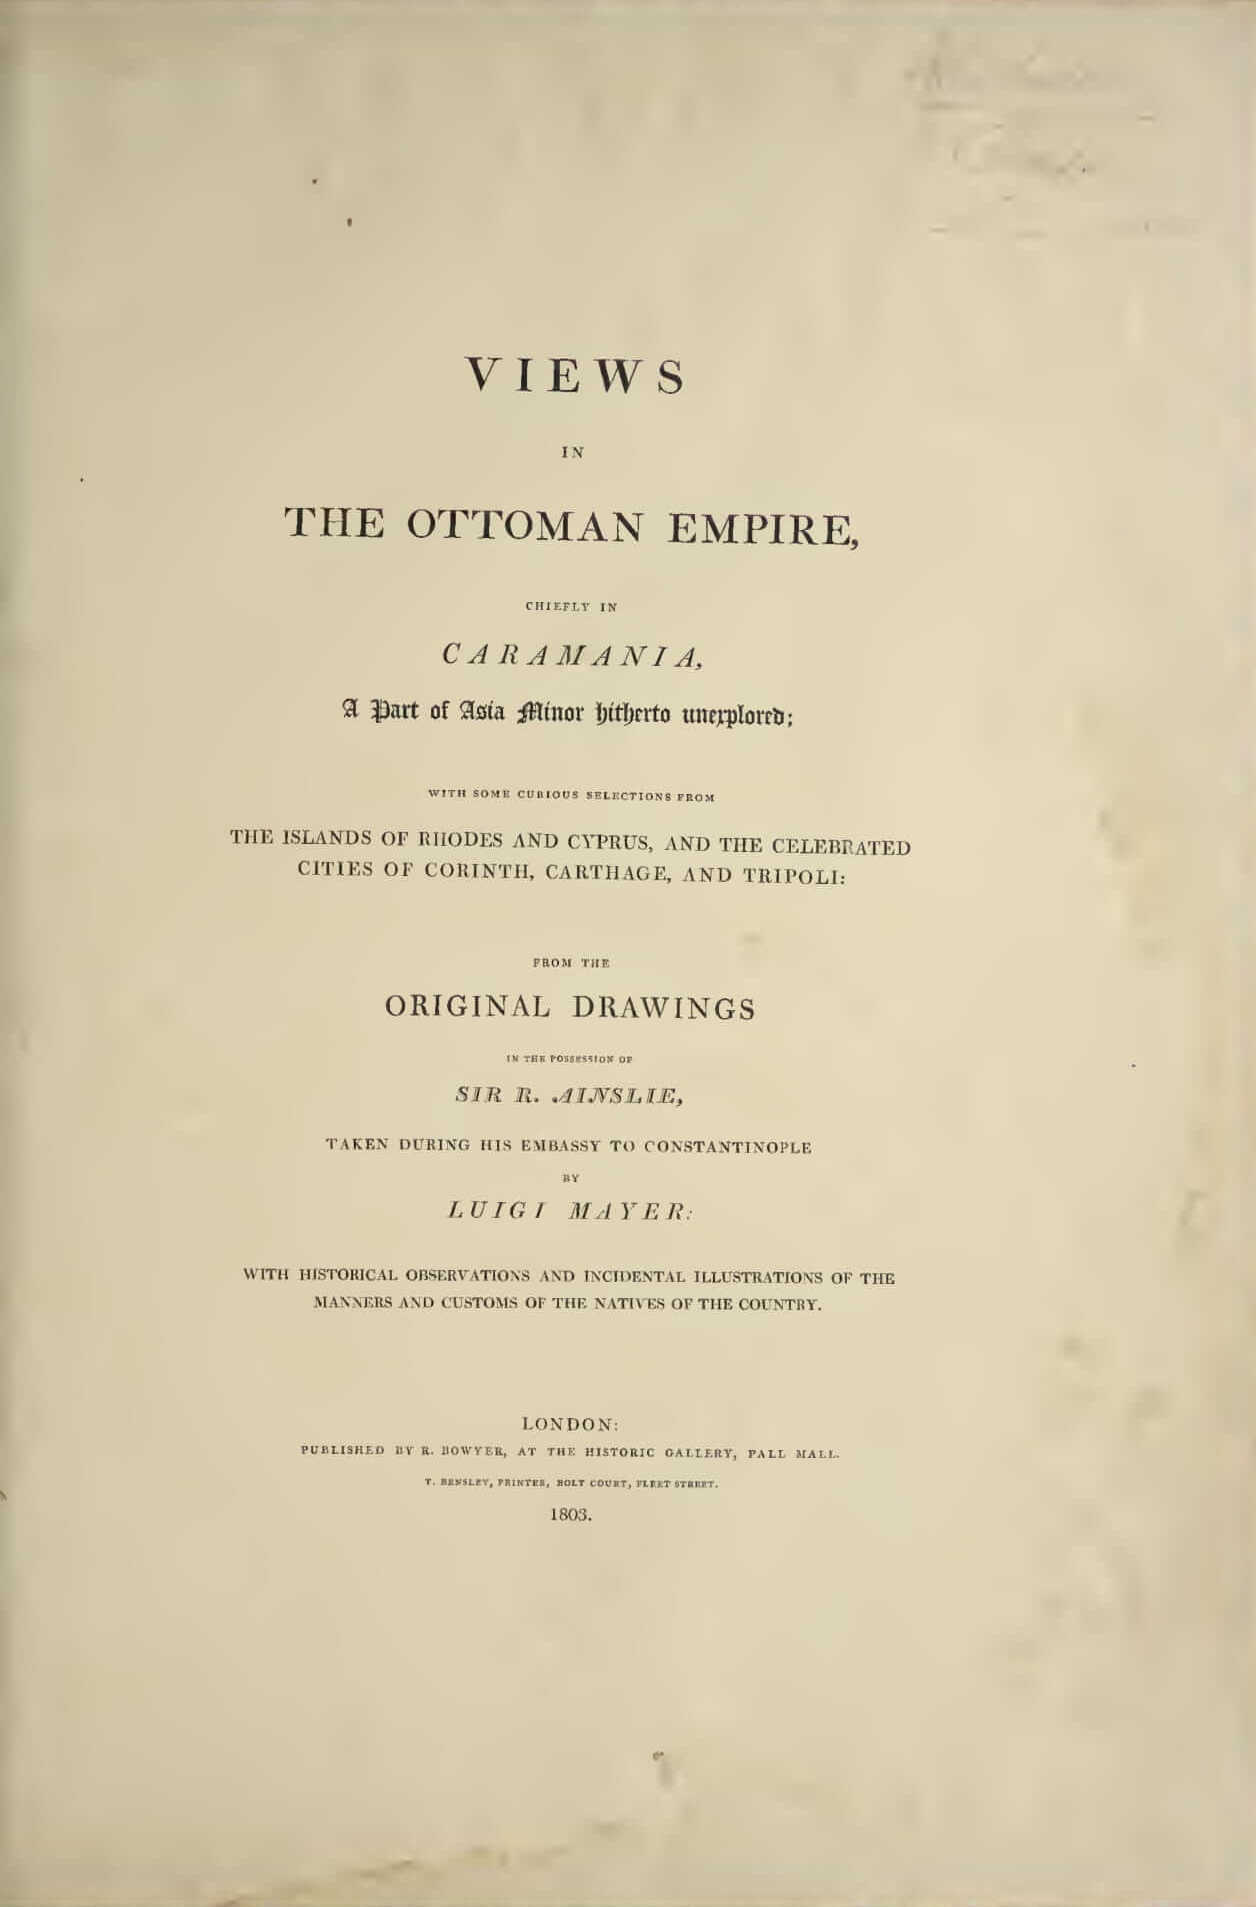 Views in the Ottoman Empire (1803)